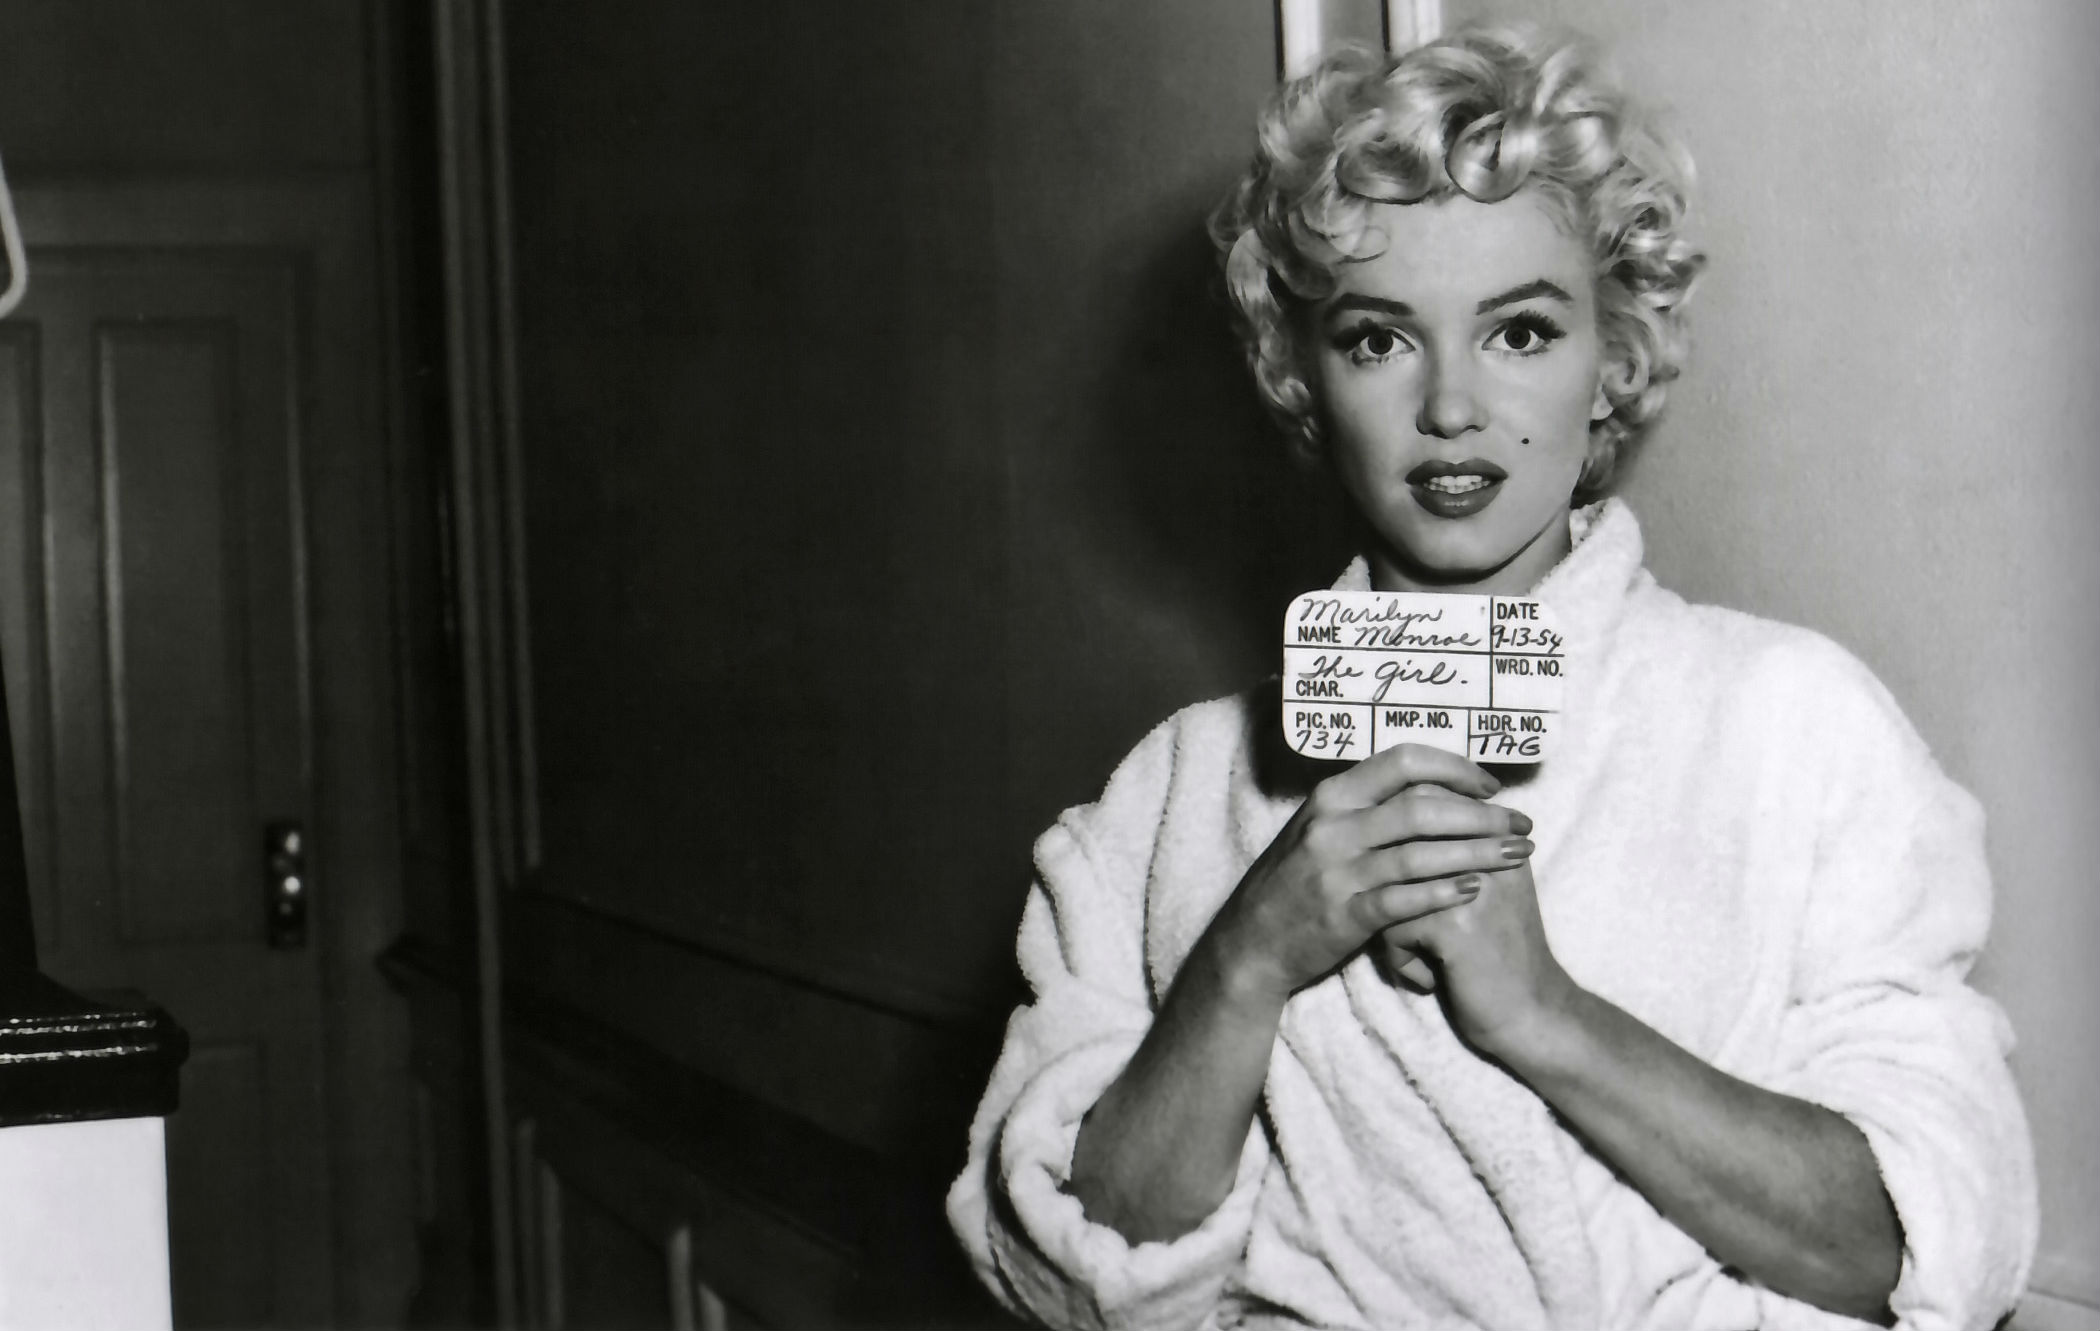 Free Download Marilyn Monroe Wallpaper Background 2100x1331 For